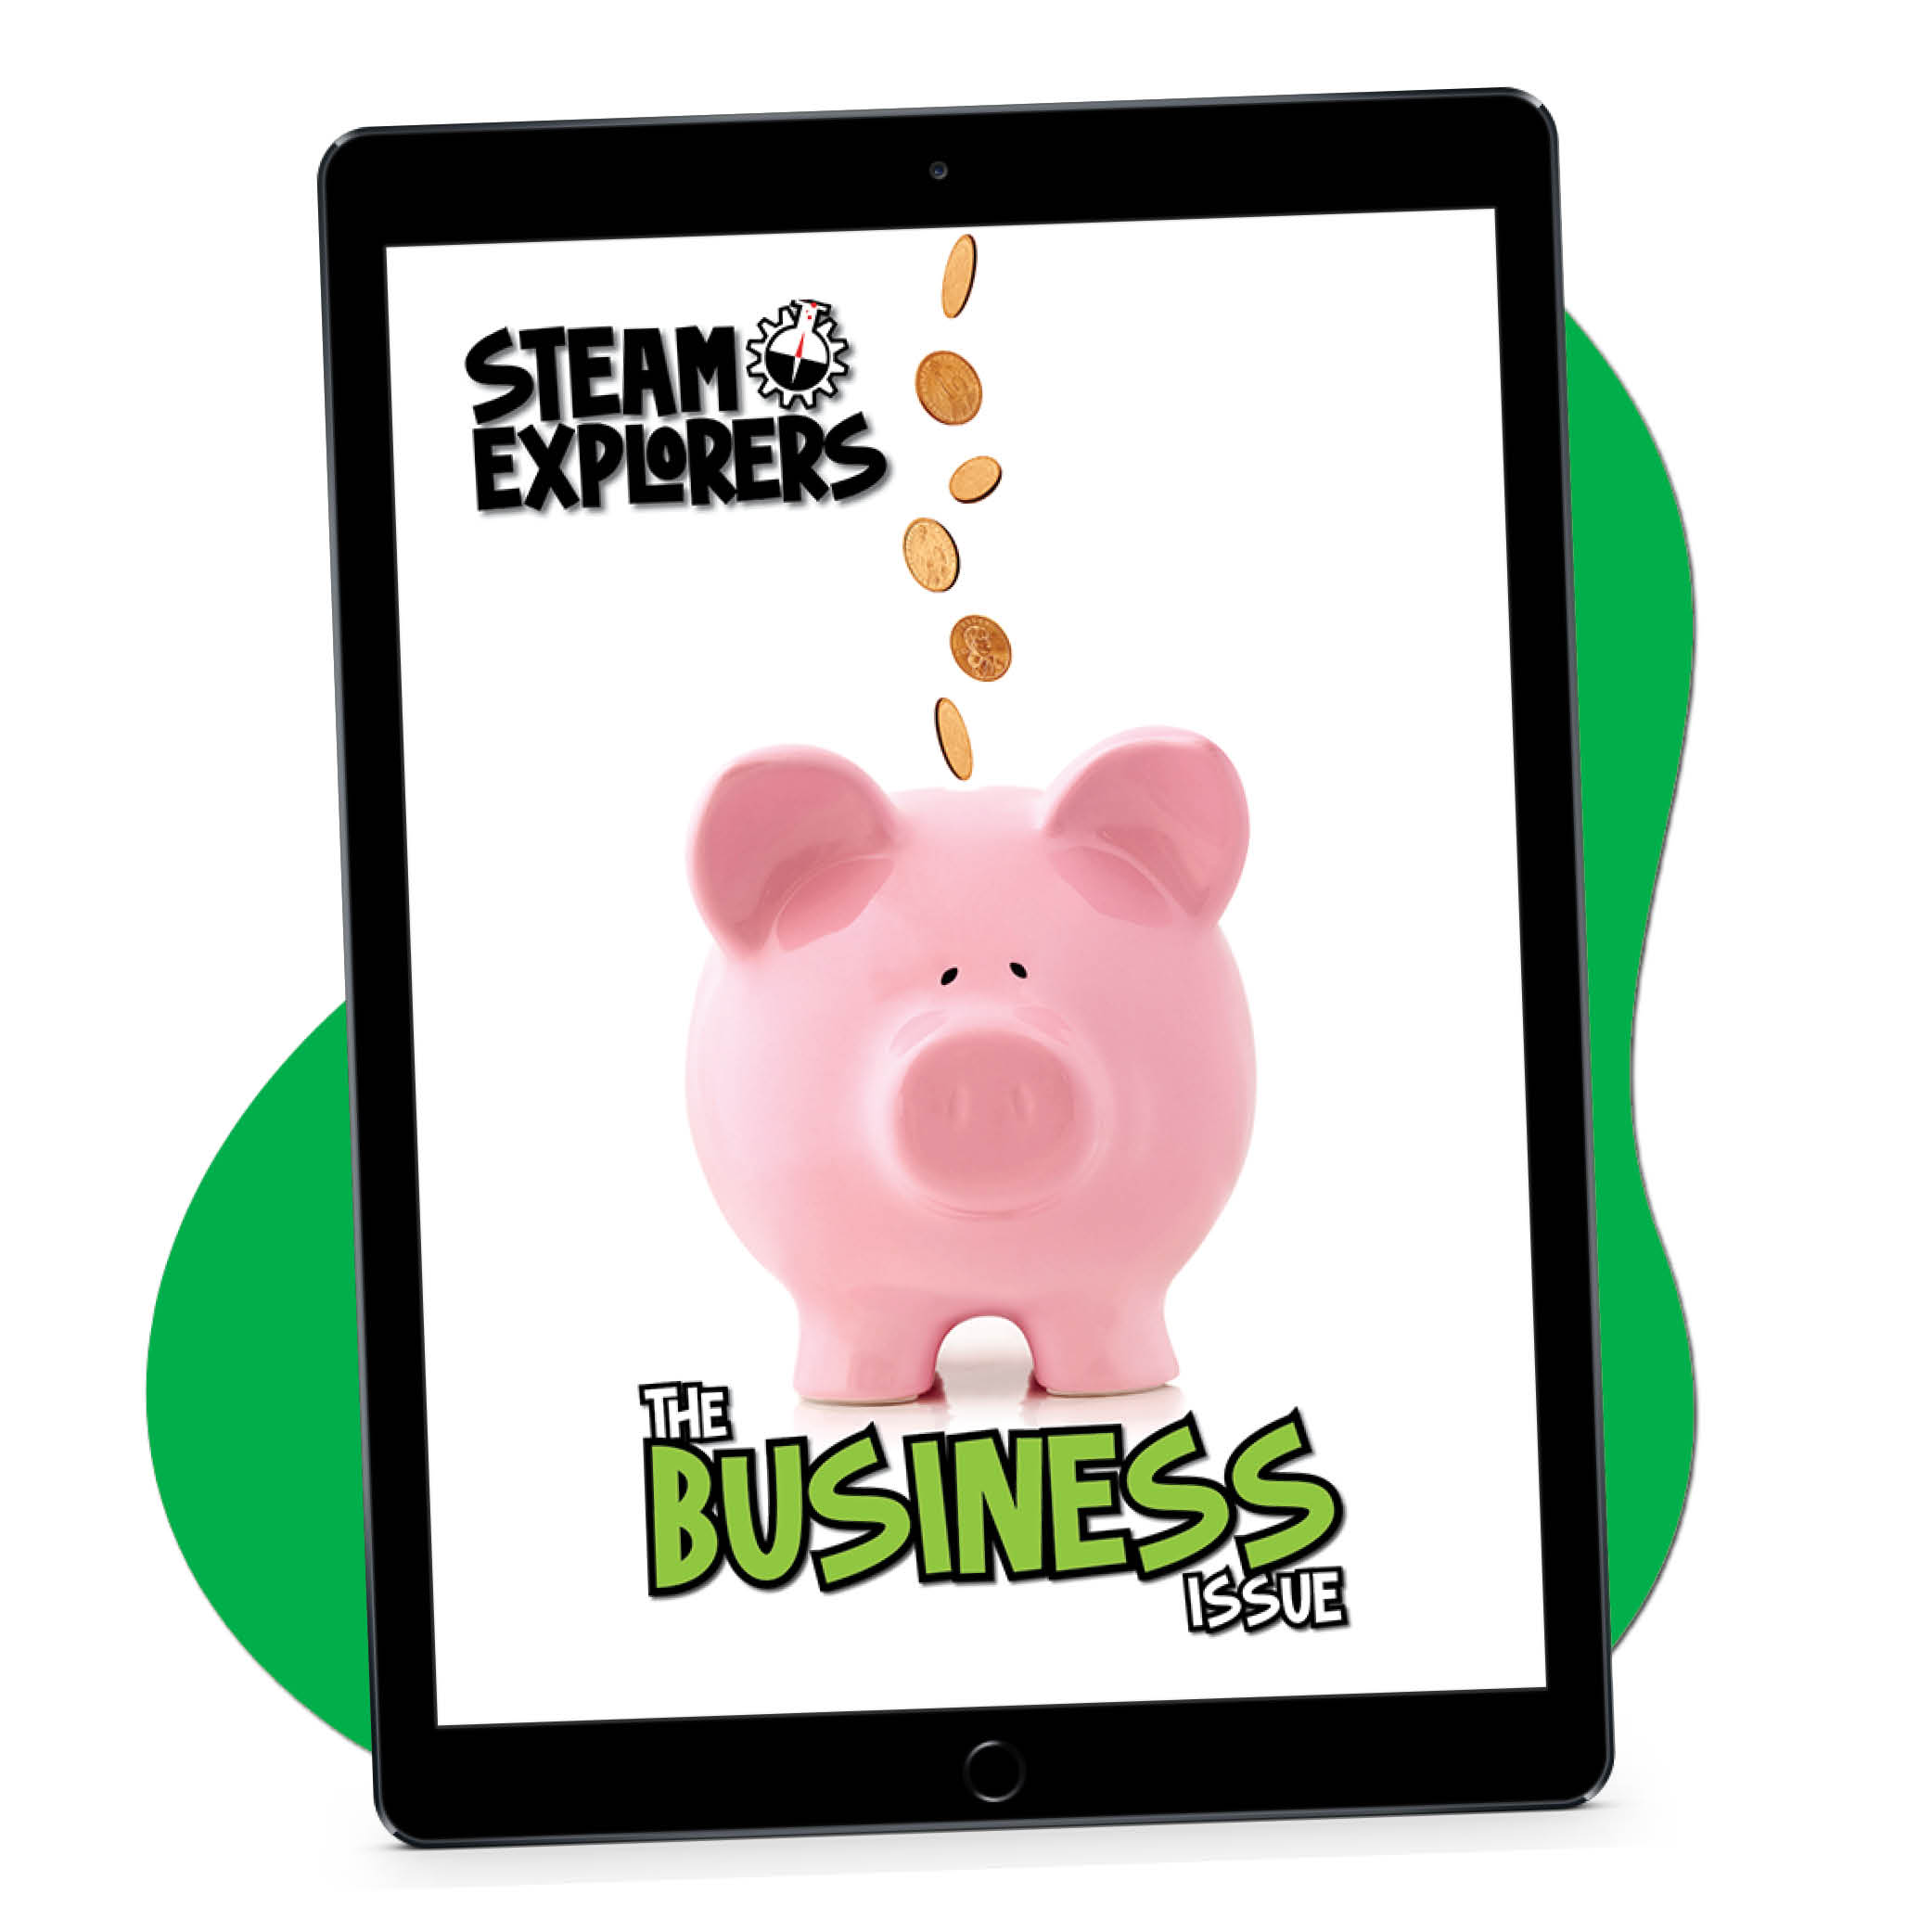 STEAM Explorers Business Issue ipad with green